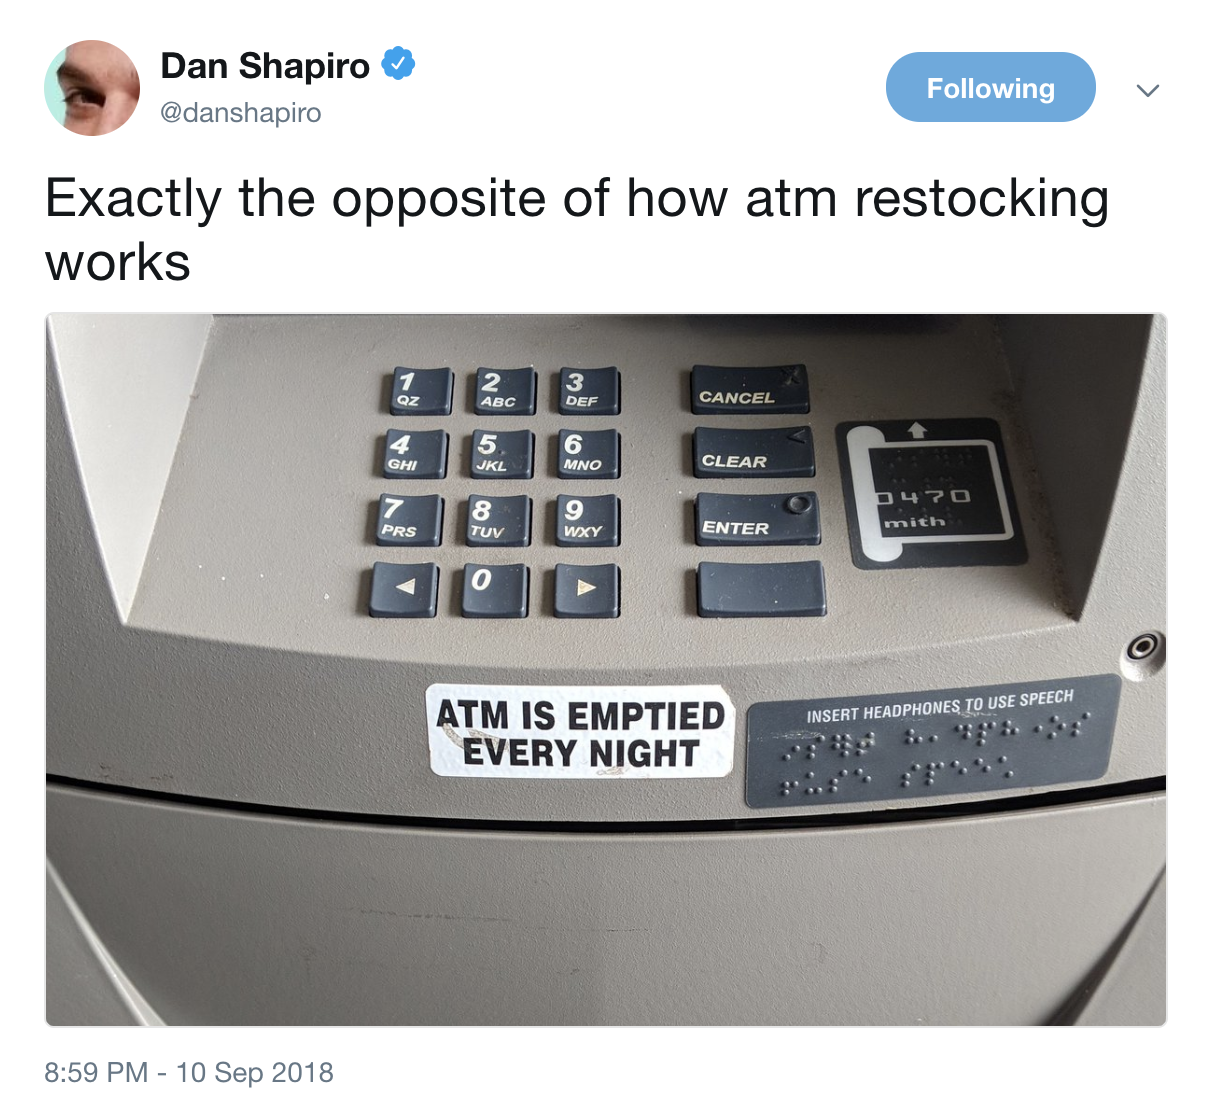 Tweet of an ATM with a sticker saying that it is emptied each night.